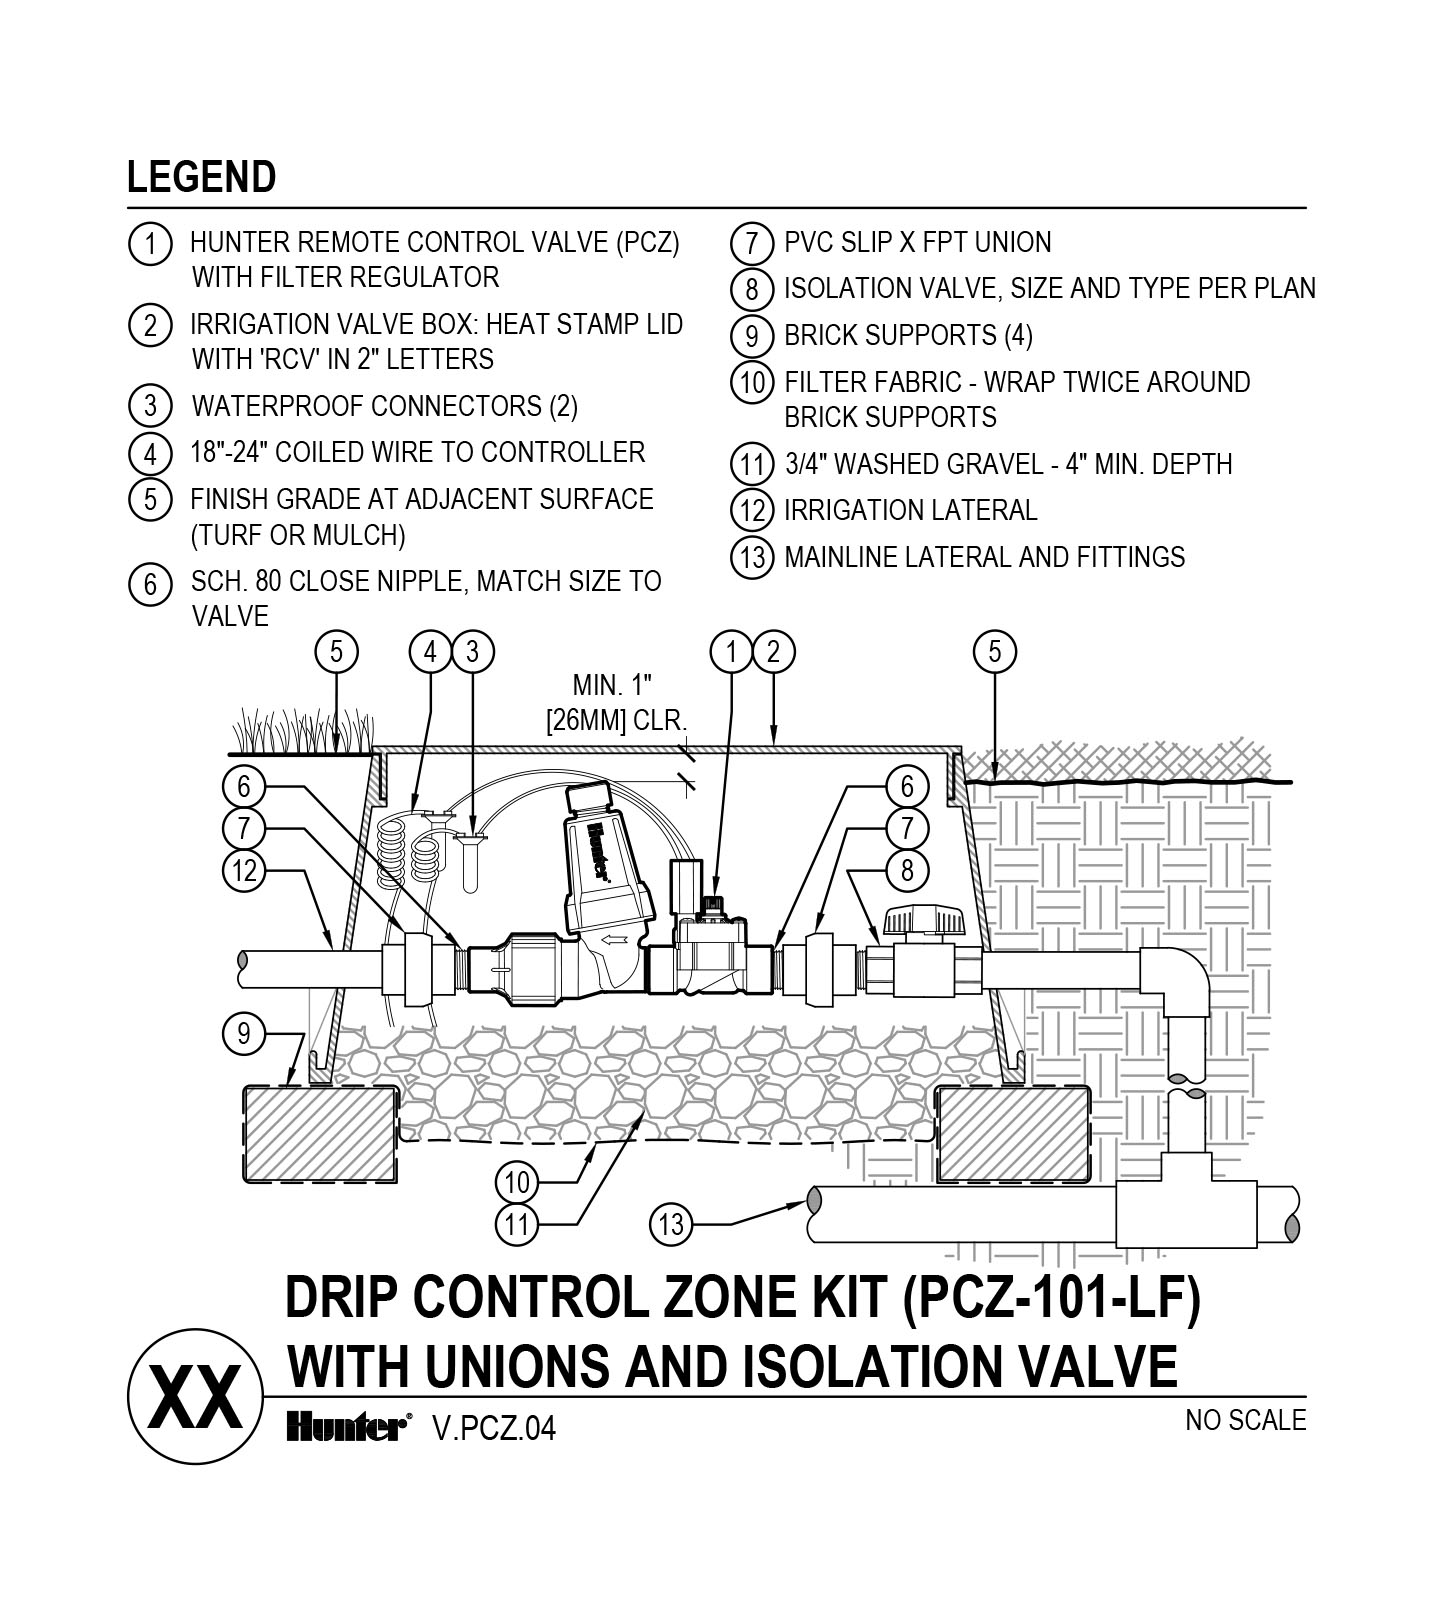 CAD - PCZ-101-LF with Unions and Shutoff Valve